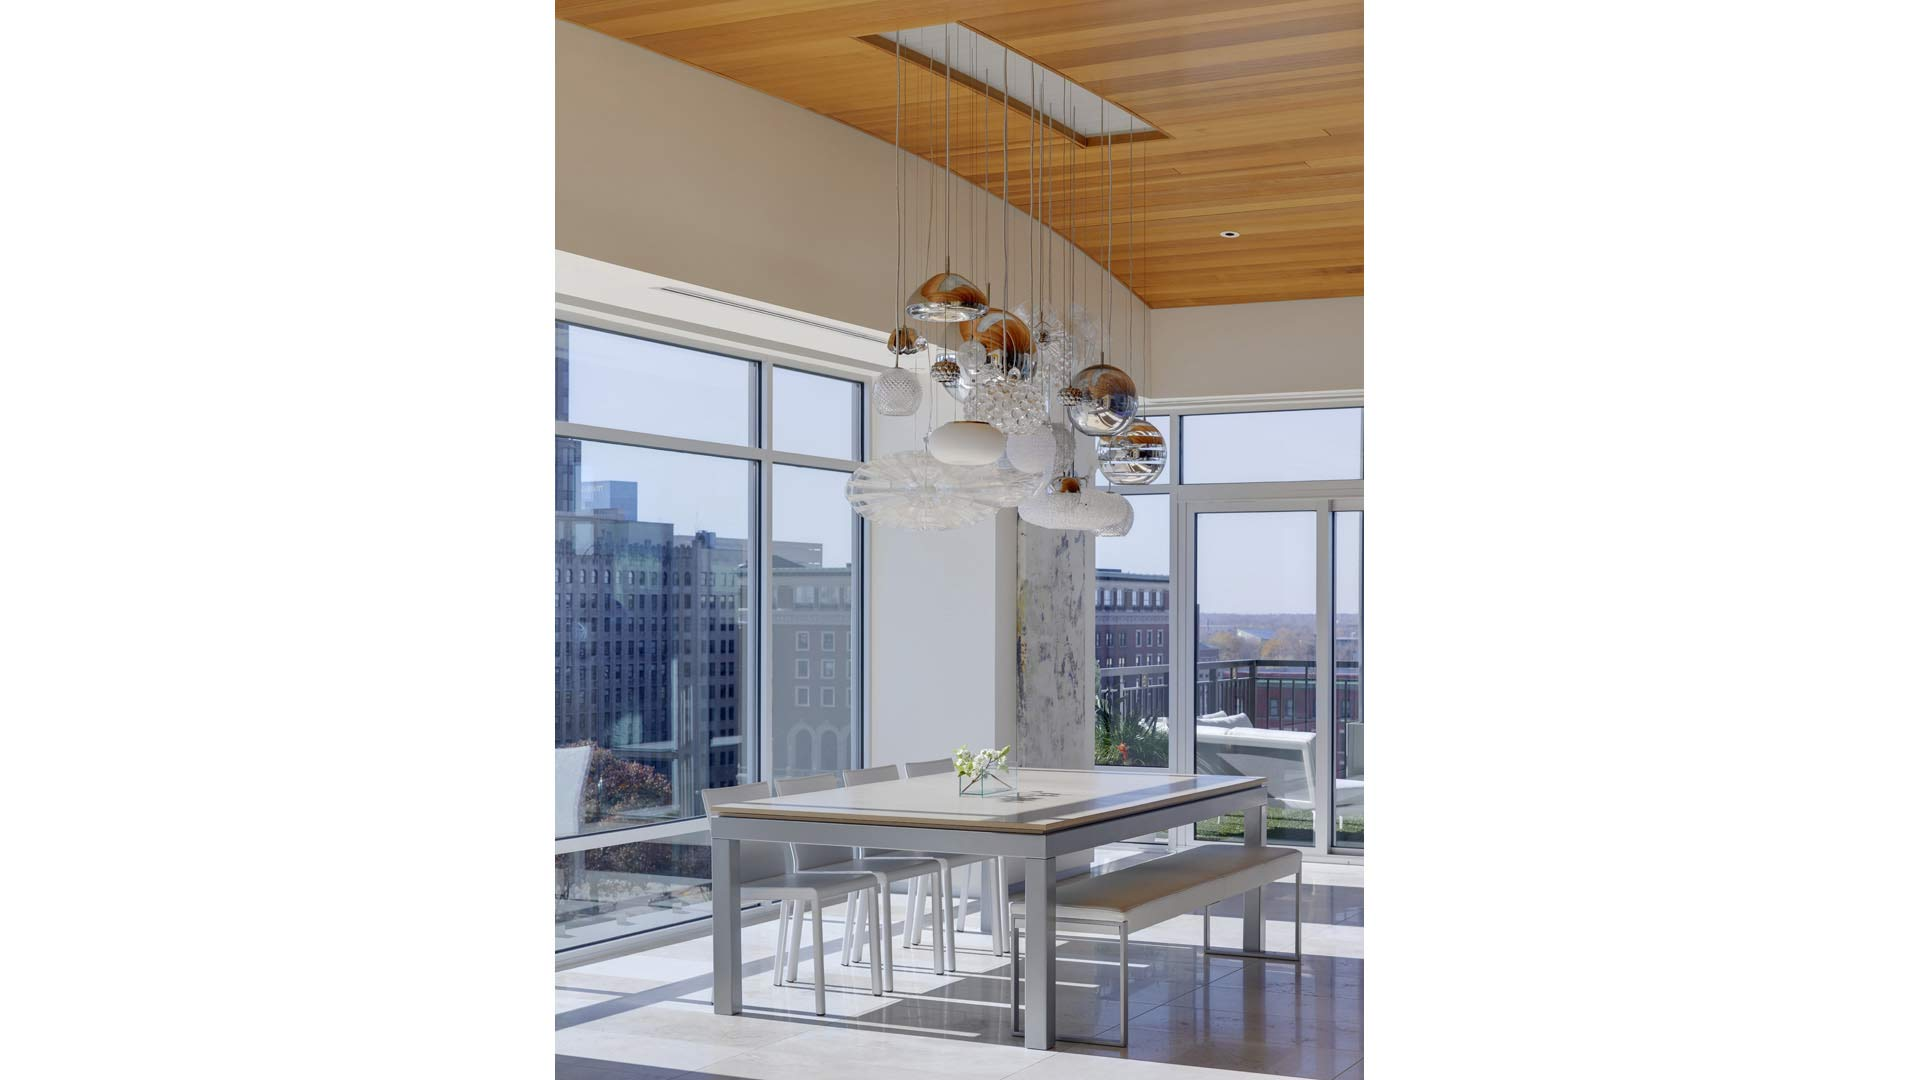 Adagio Penthouse Interior - Dining Room Pendant Light Constellation - HAUS Architecture, Christopher Short, Indianapolis Architect